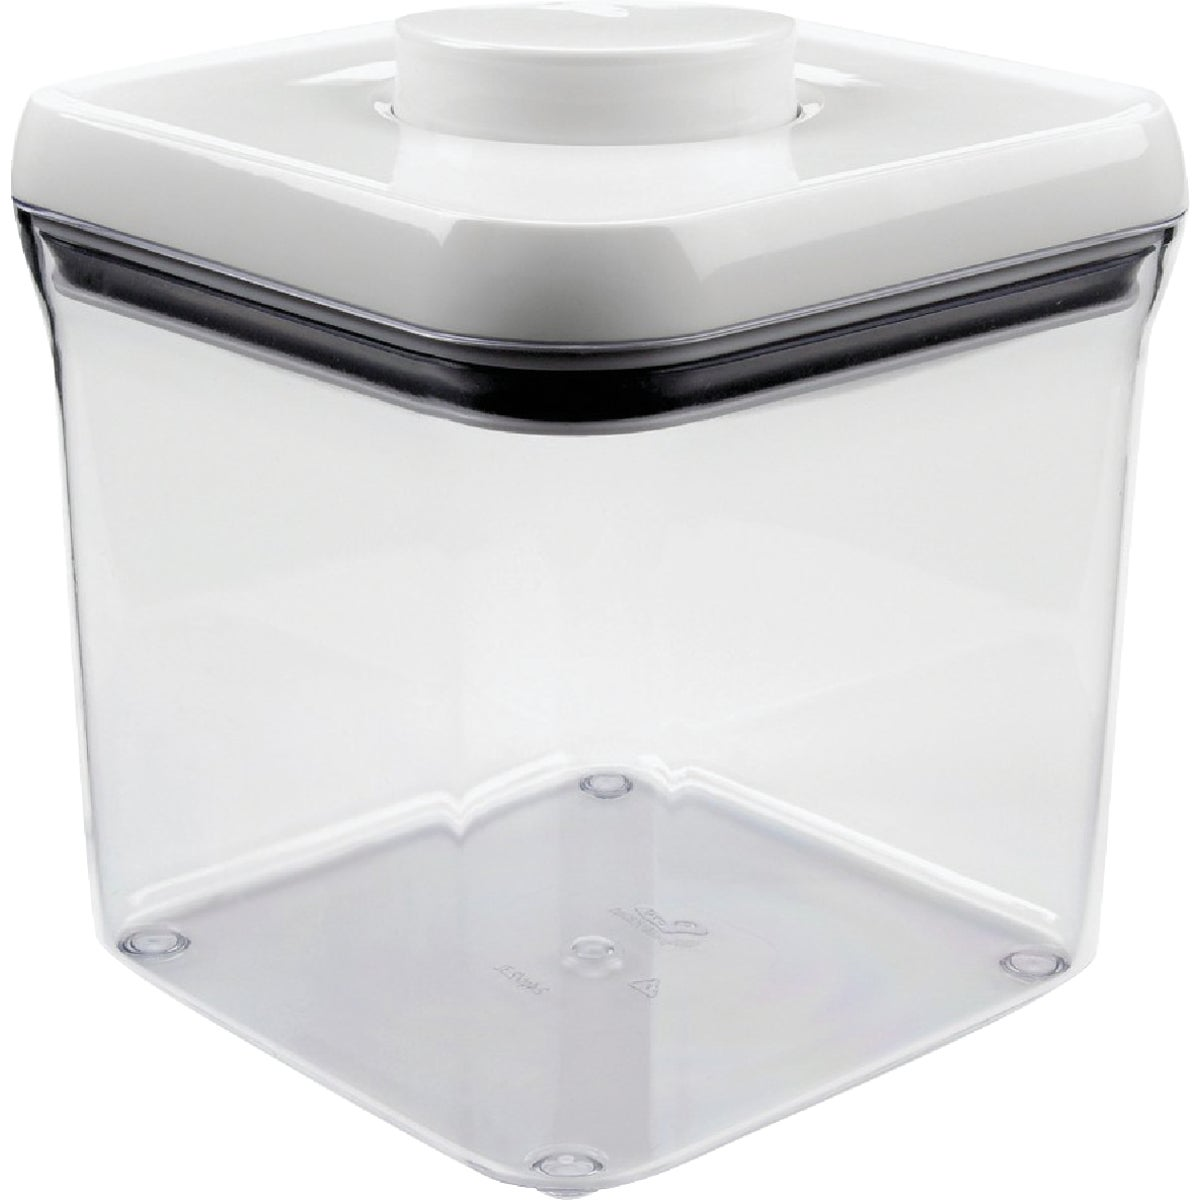 2.4QT SQ POP CONTAINER - 1071399 by Oxo International